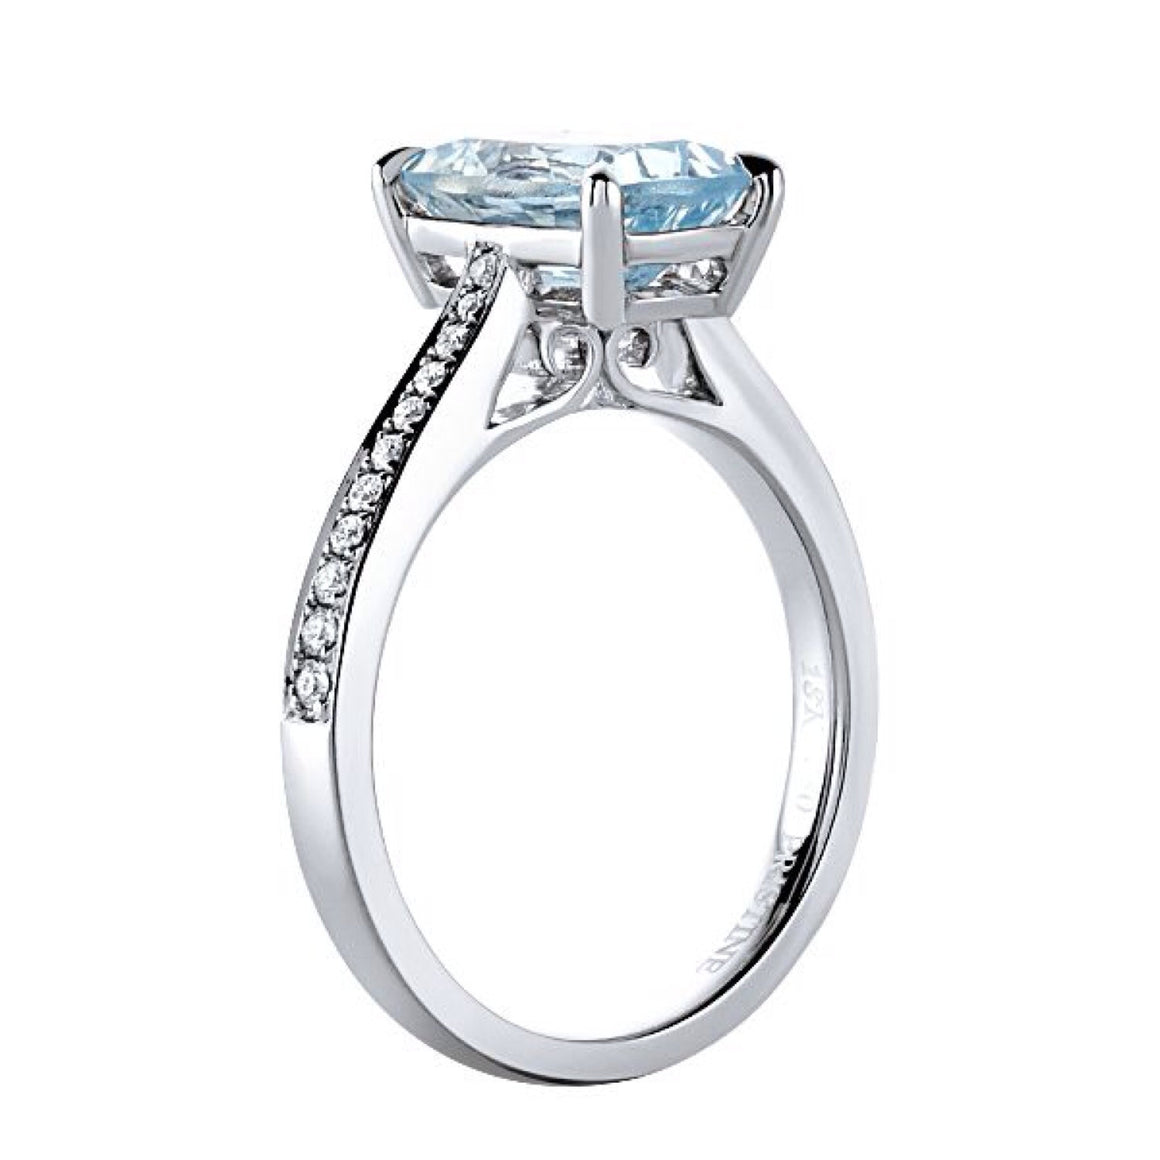 Aquamarine Ring Cushion Cut Diamond Engagement Ring 14kt White Gold